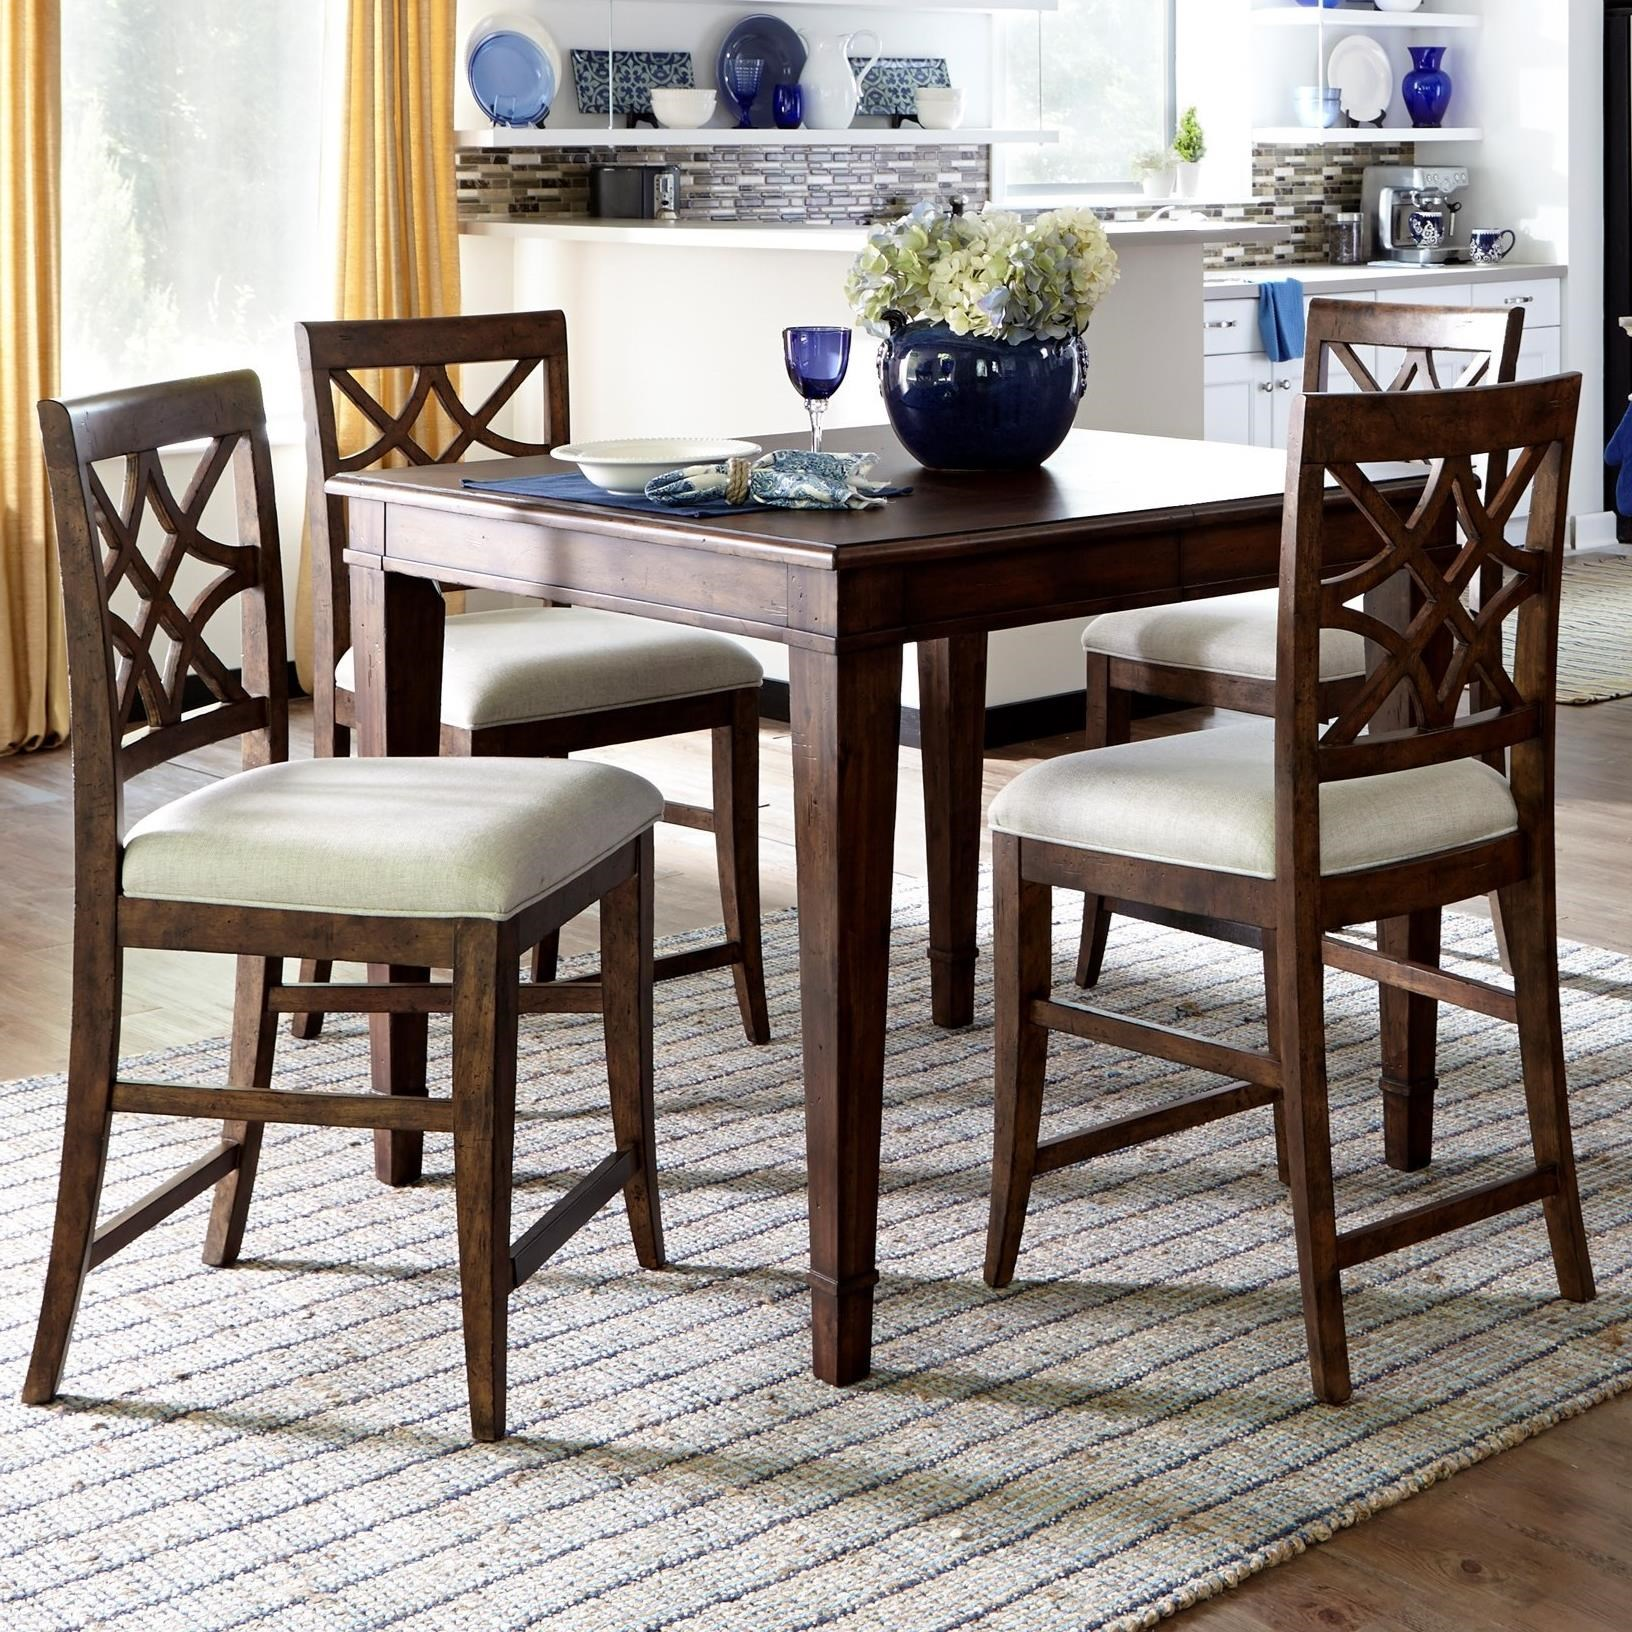 5 Piece Counter Height Table and Chairs Set & 5 Piece Counter Height Table and Chairs Set by Trisha Yearwood Home ...